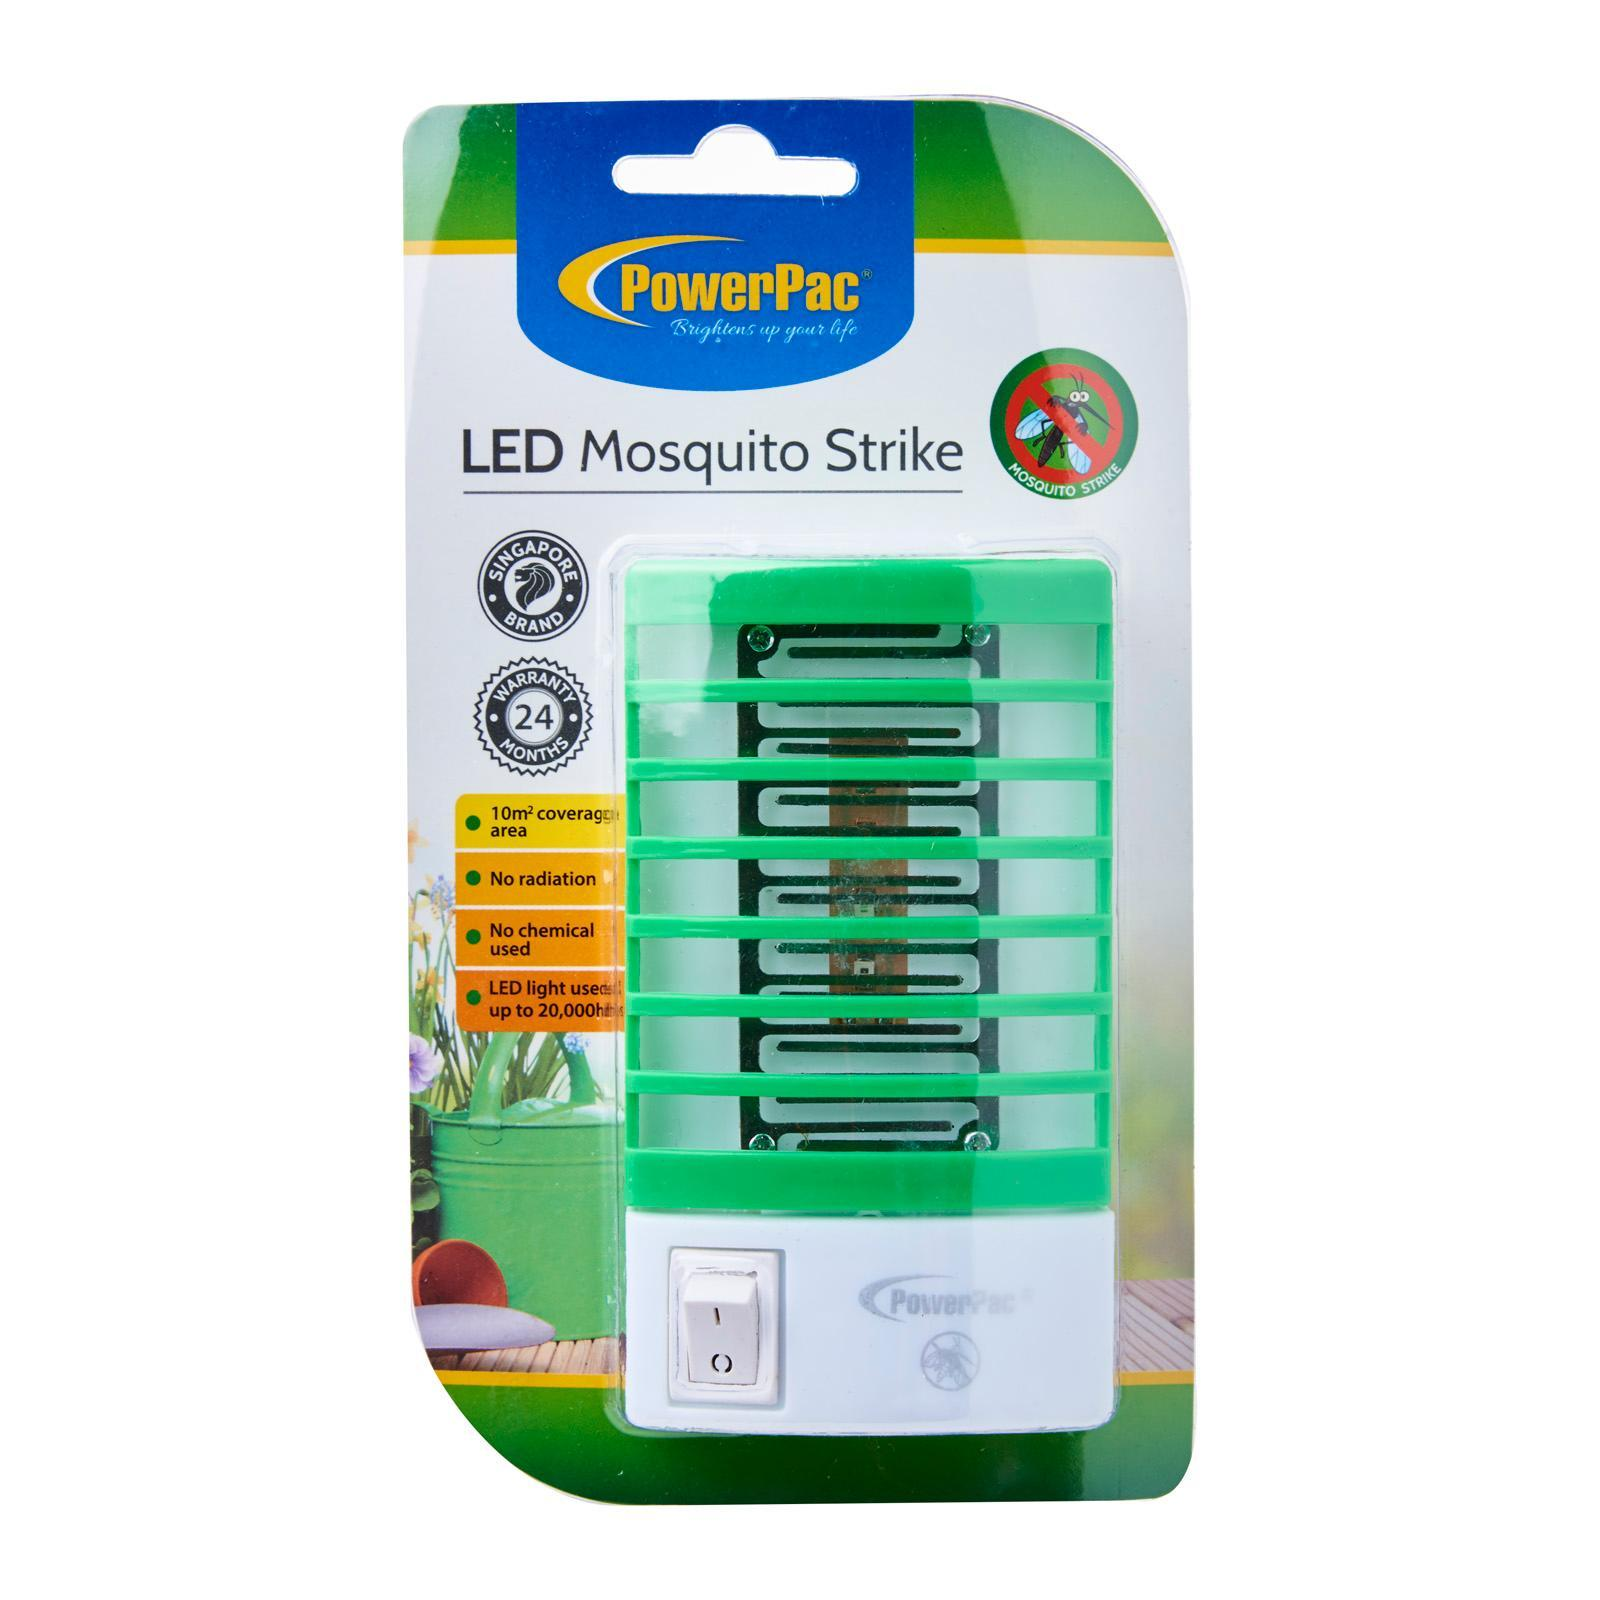 PowerPac Led Mosquito Power Strike - No Radiation and Chemical Used (Pp2234)